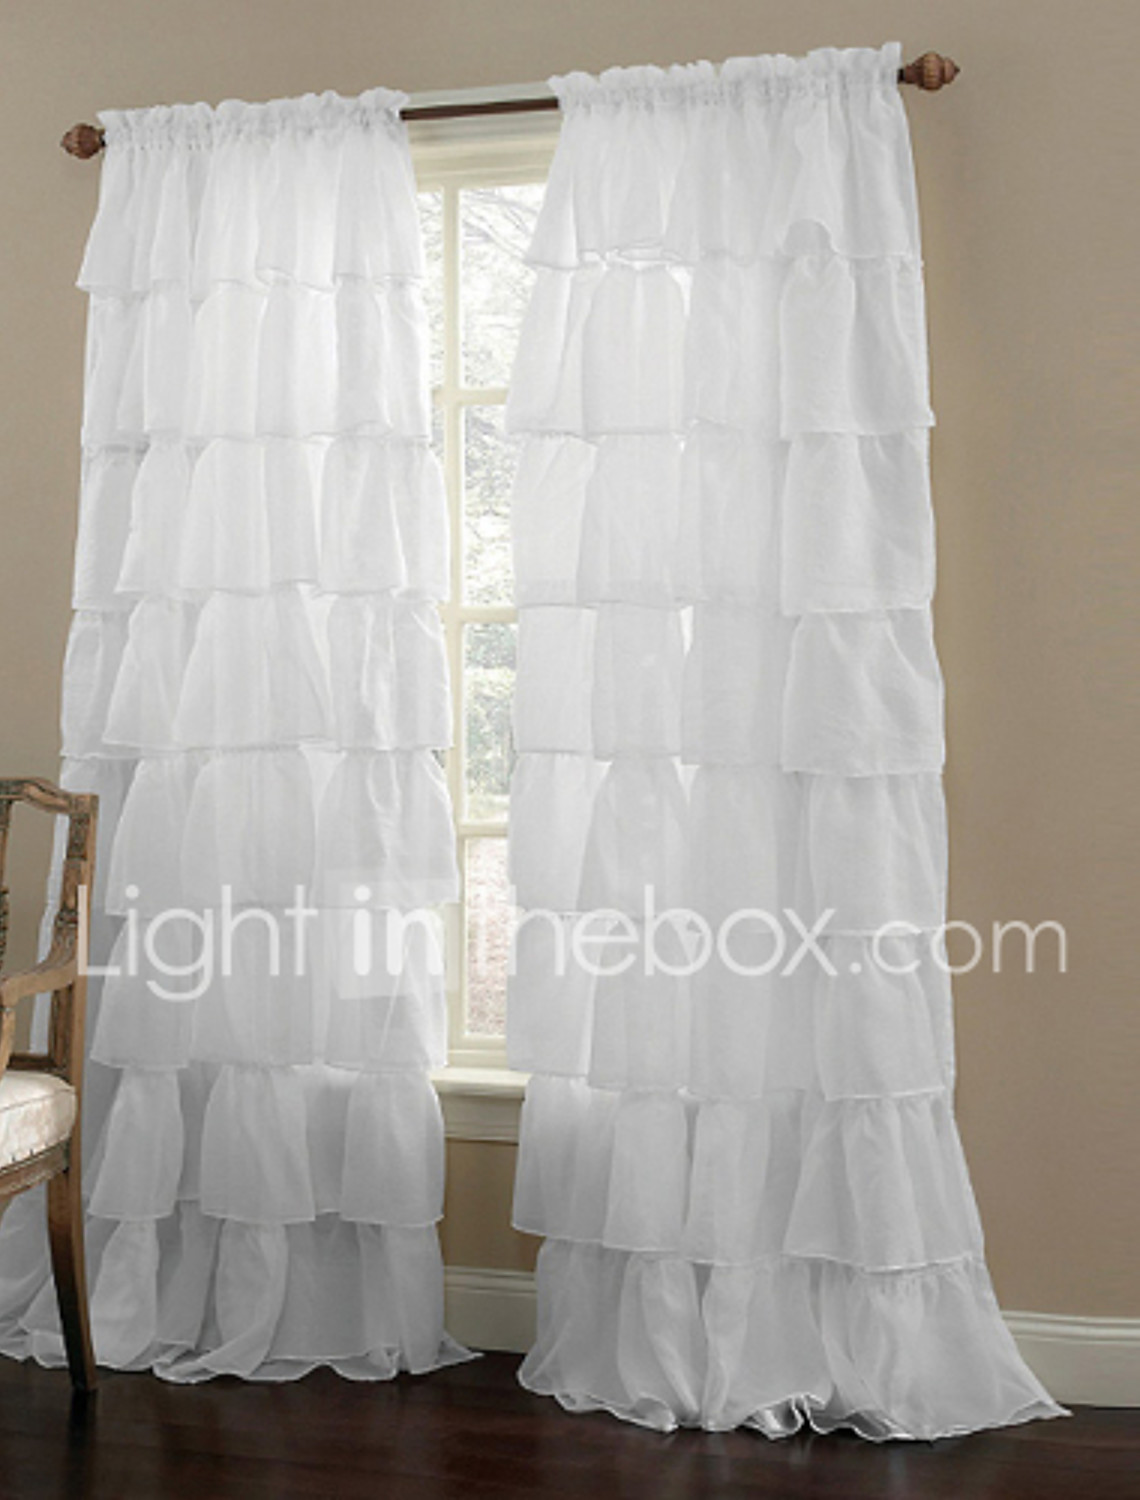 Sheer white bedroom curtains - One Panel Curtain Modern Solid Living Room Polyester Material Sheer Curtains Shades Home Decoration For